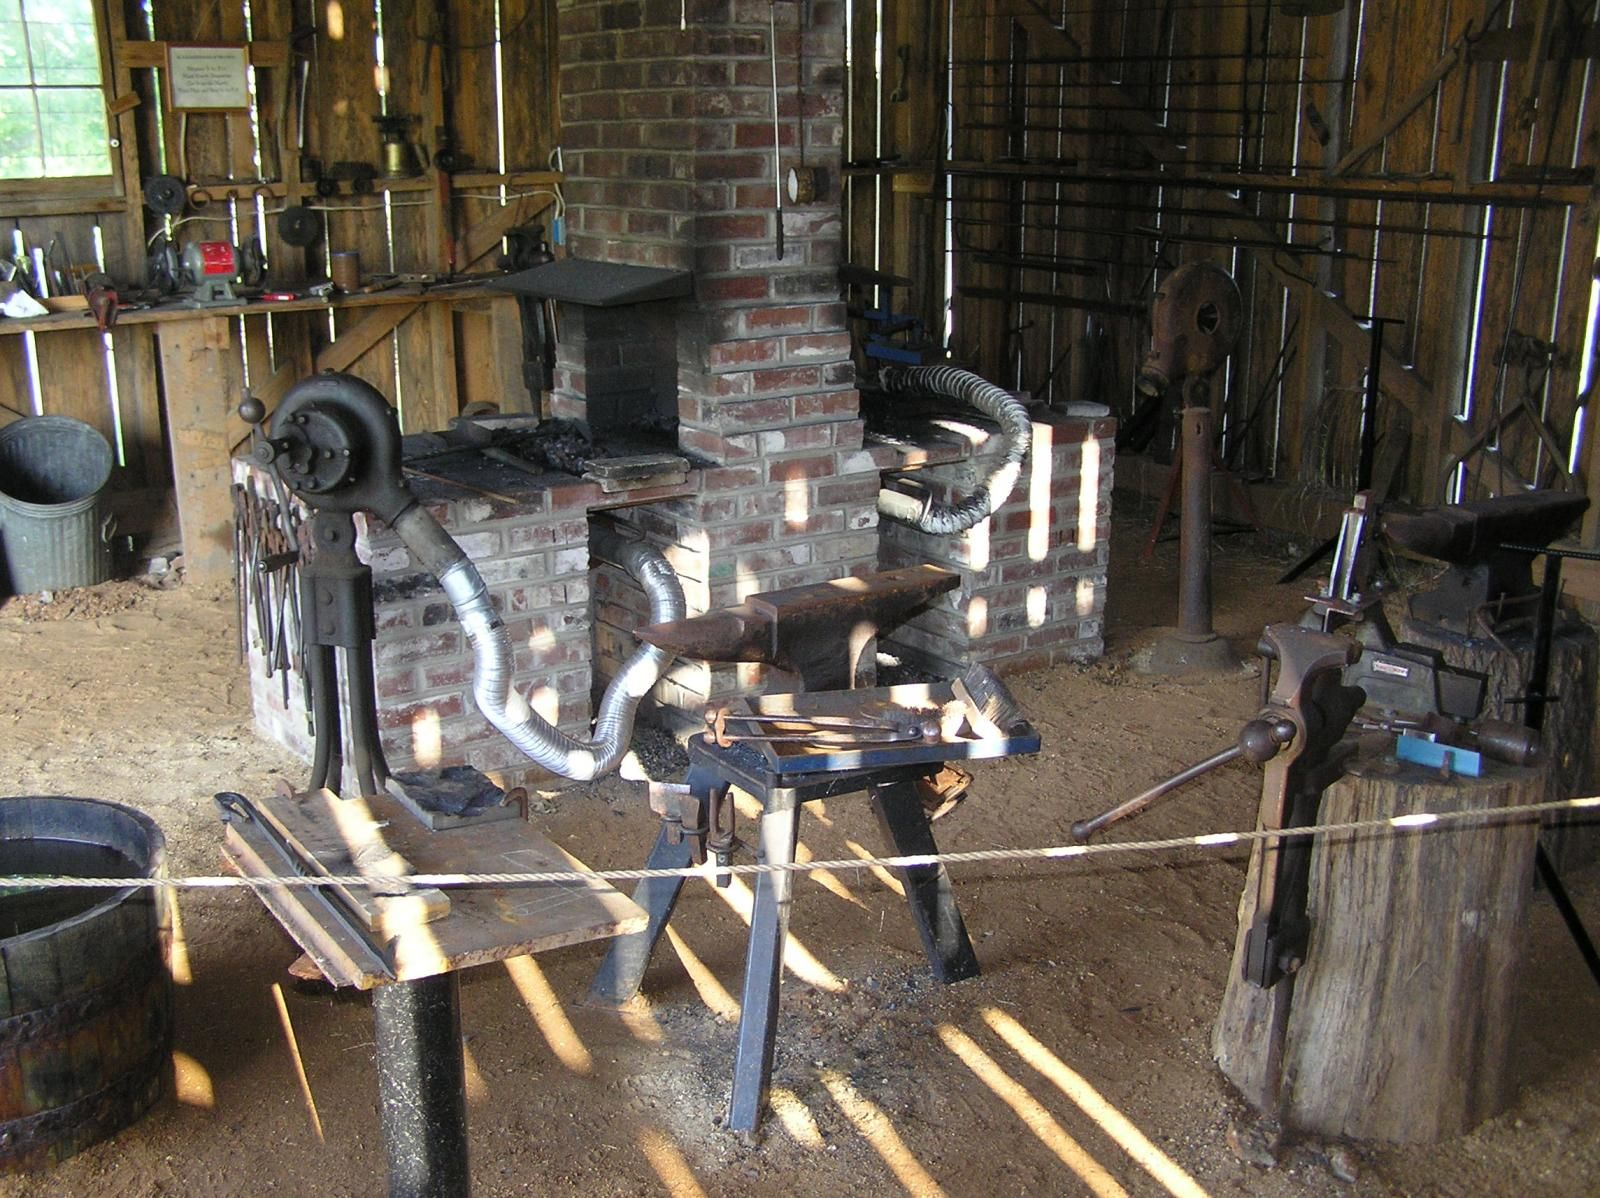 The Tom Kennon Blacksmith Shop In Doniphan Mo Blacksmith Shop Blacksmithing Doniphan